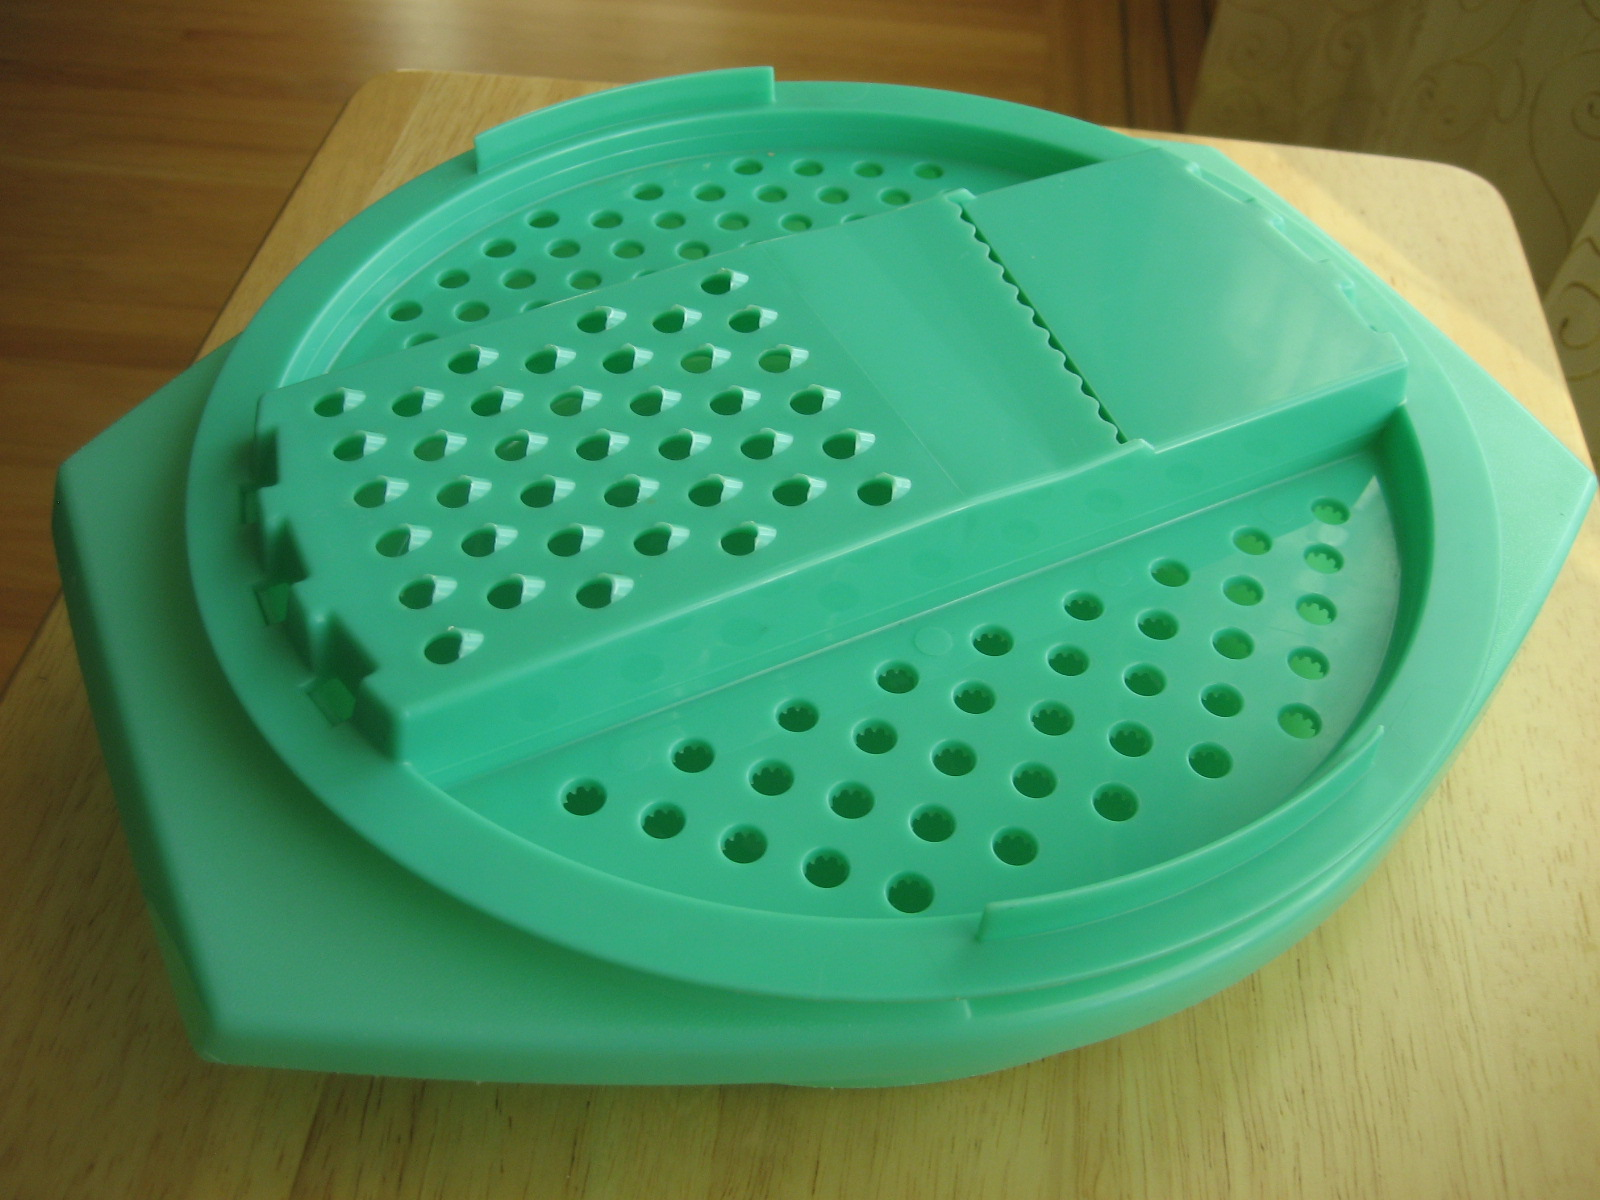 Six Balloons Vintage Delights: Vintage Green Tupperware Grater